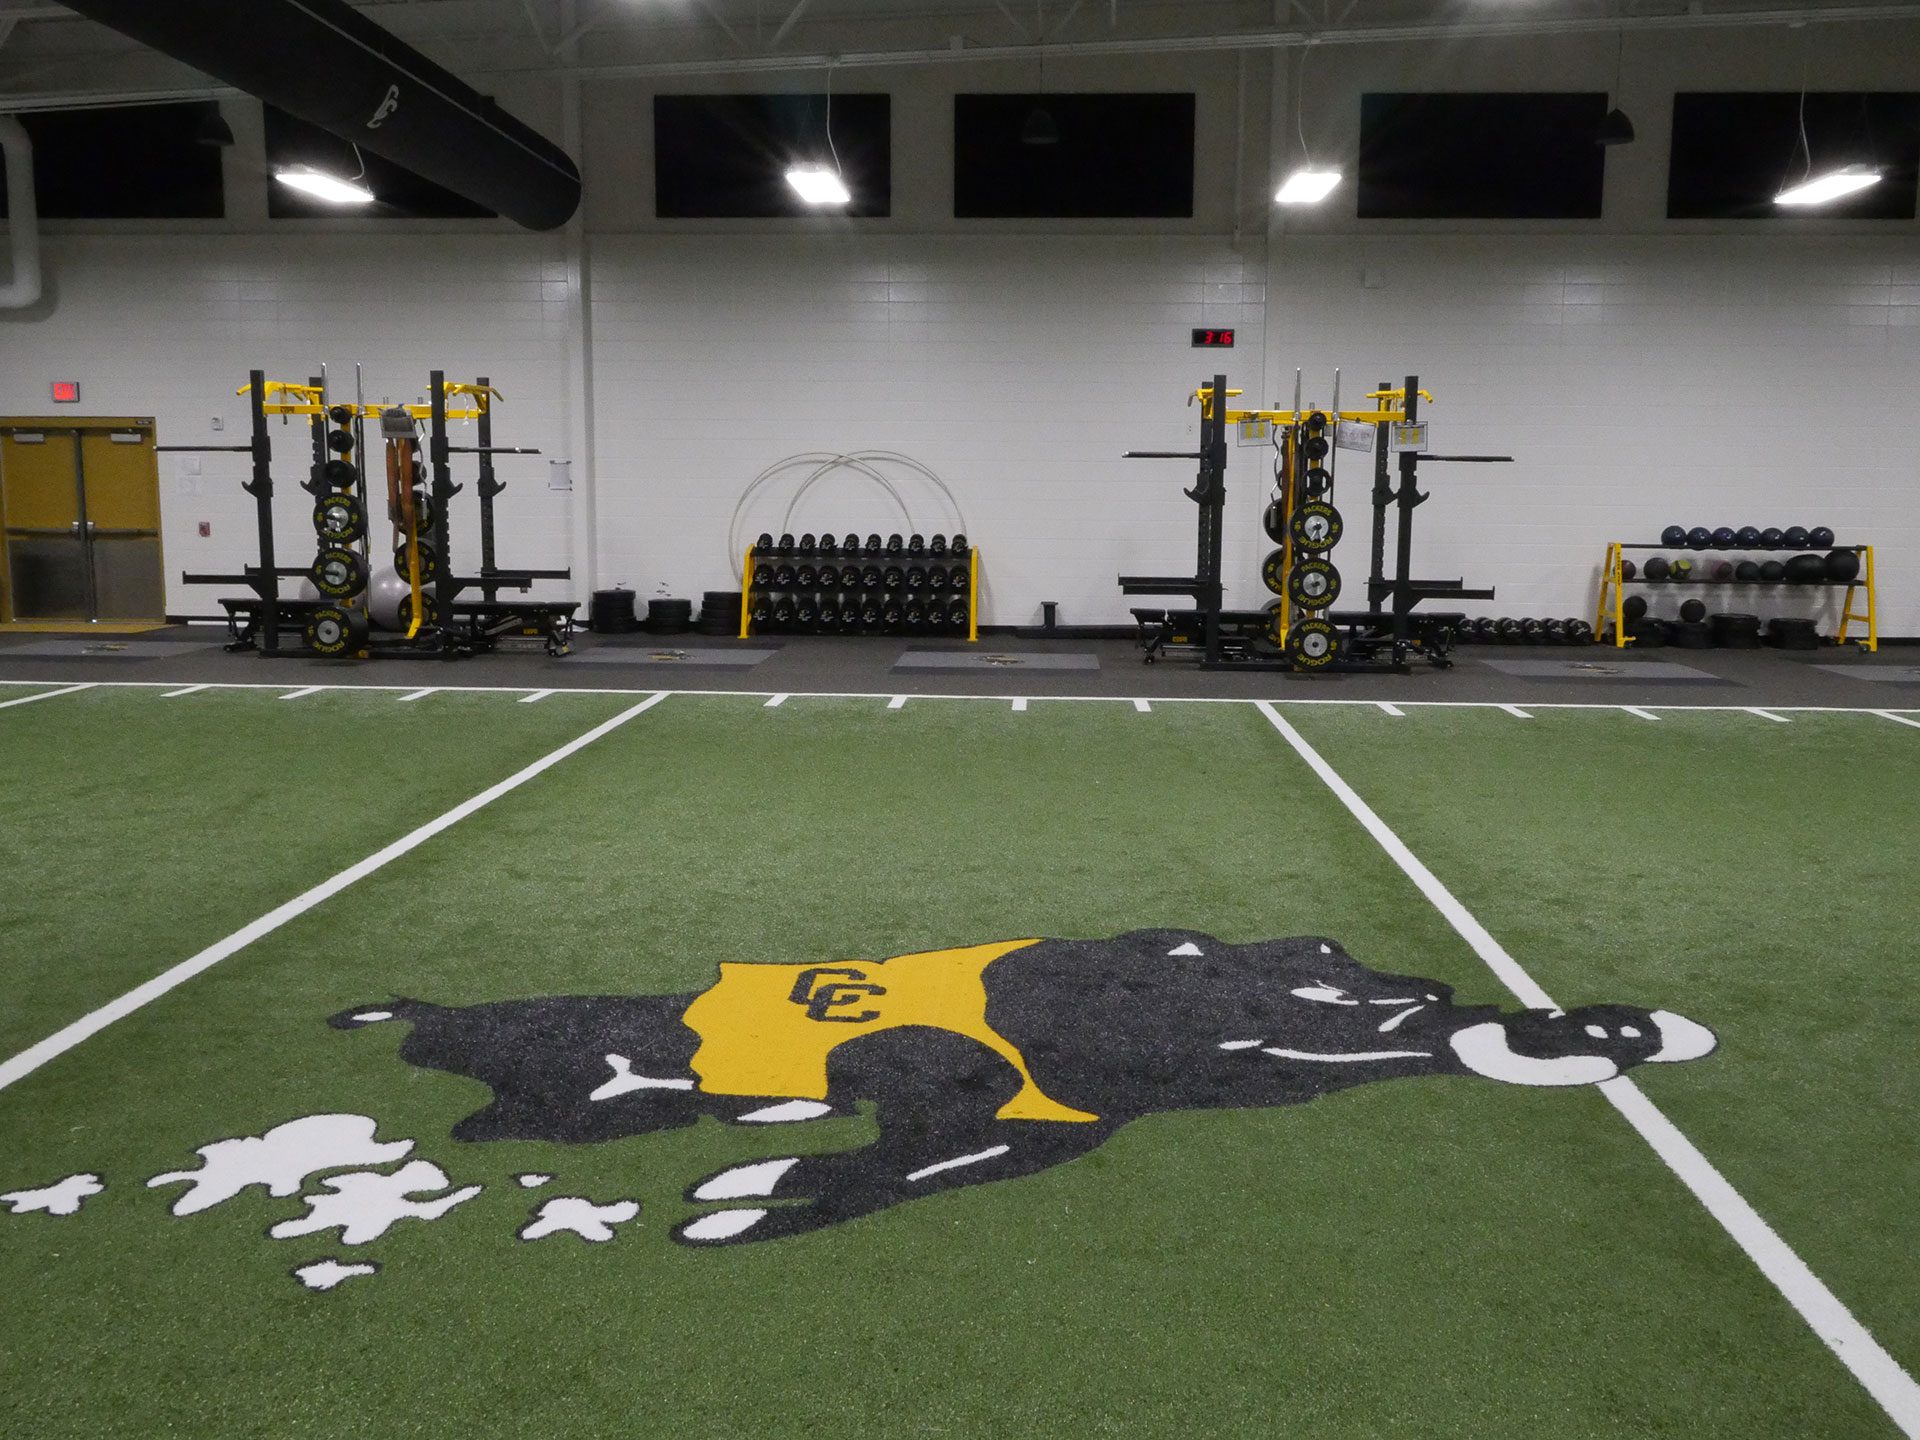 colquitt-county-packers-weight-training-facility-